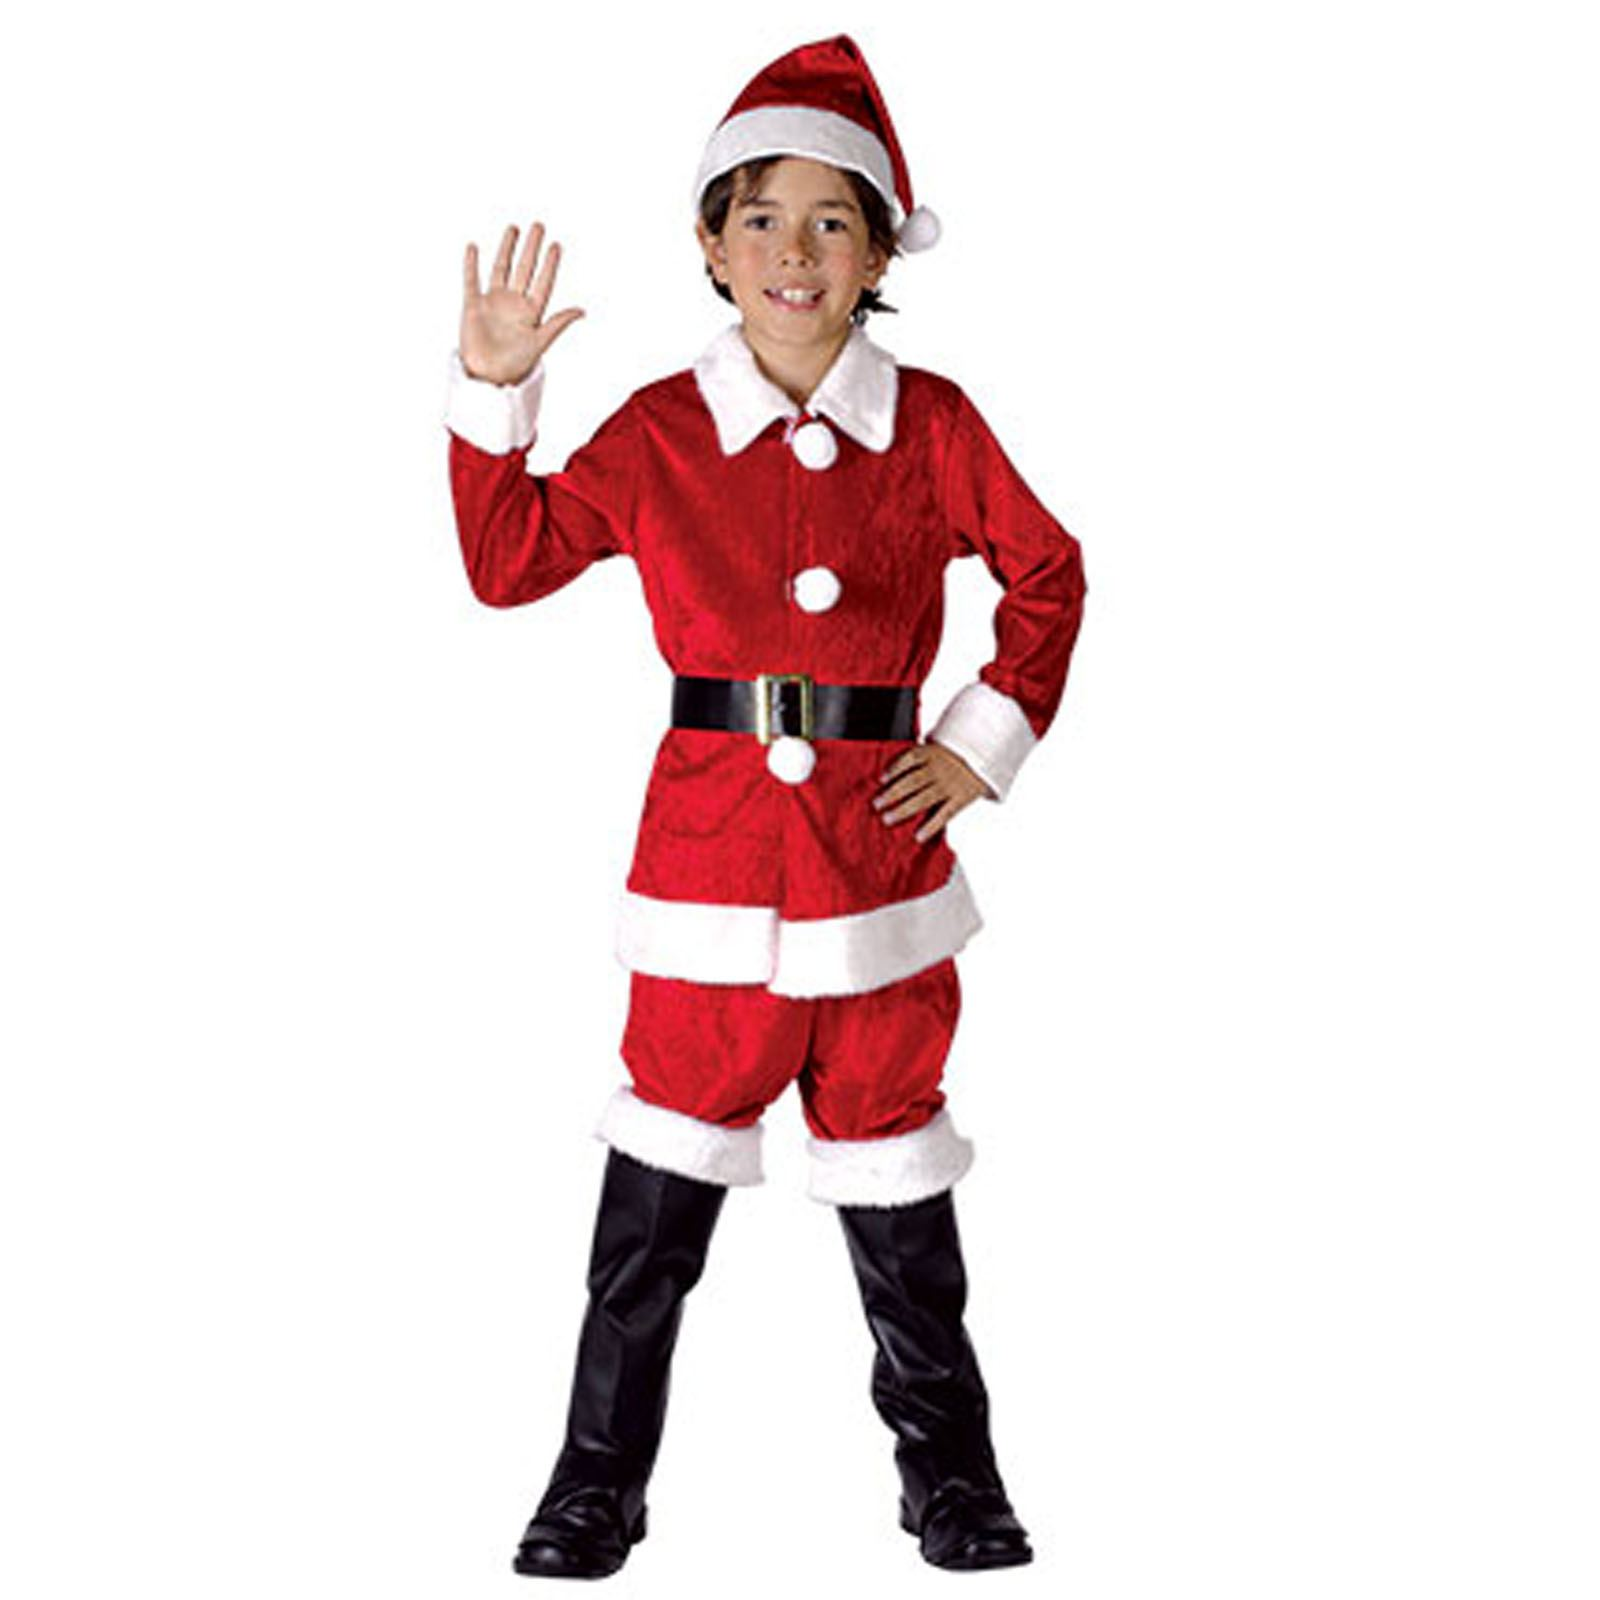 kids christmas costume boys child santa claus elf xmas outfit suit